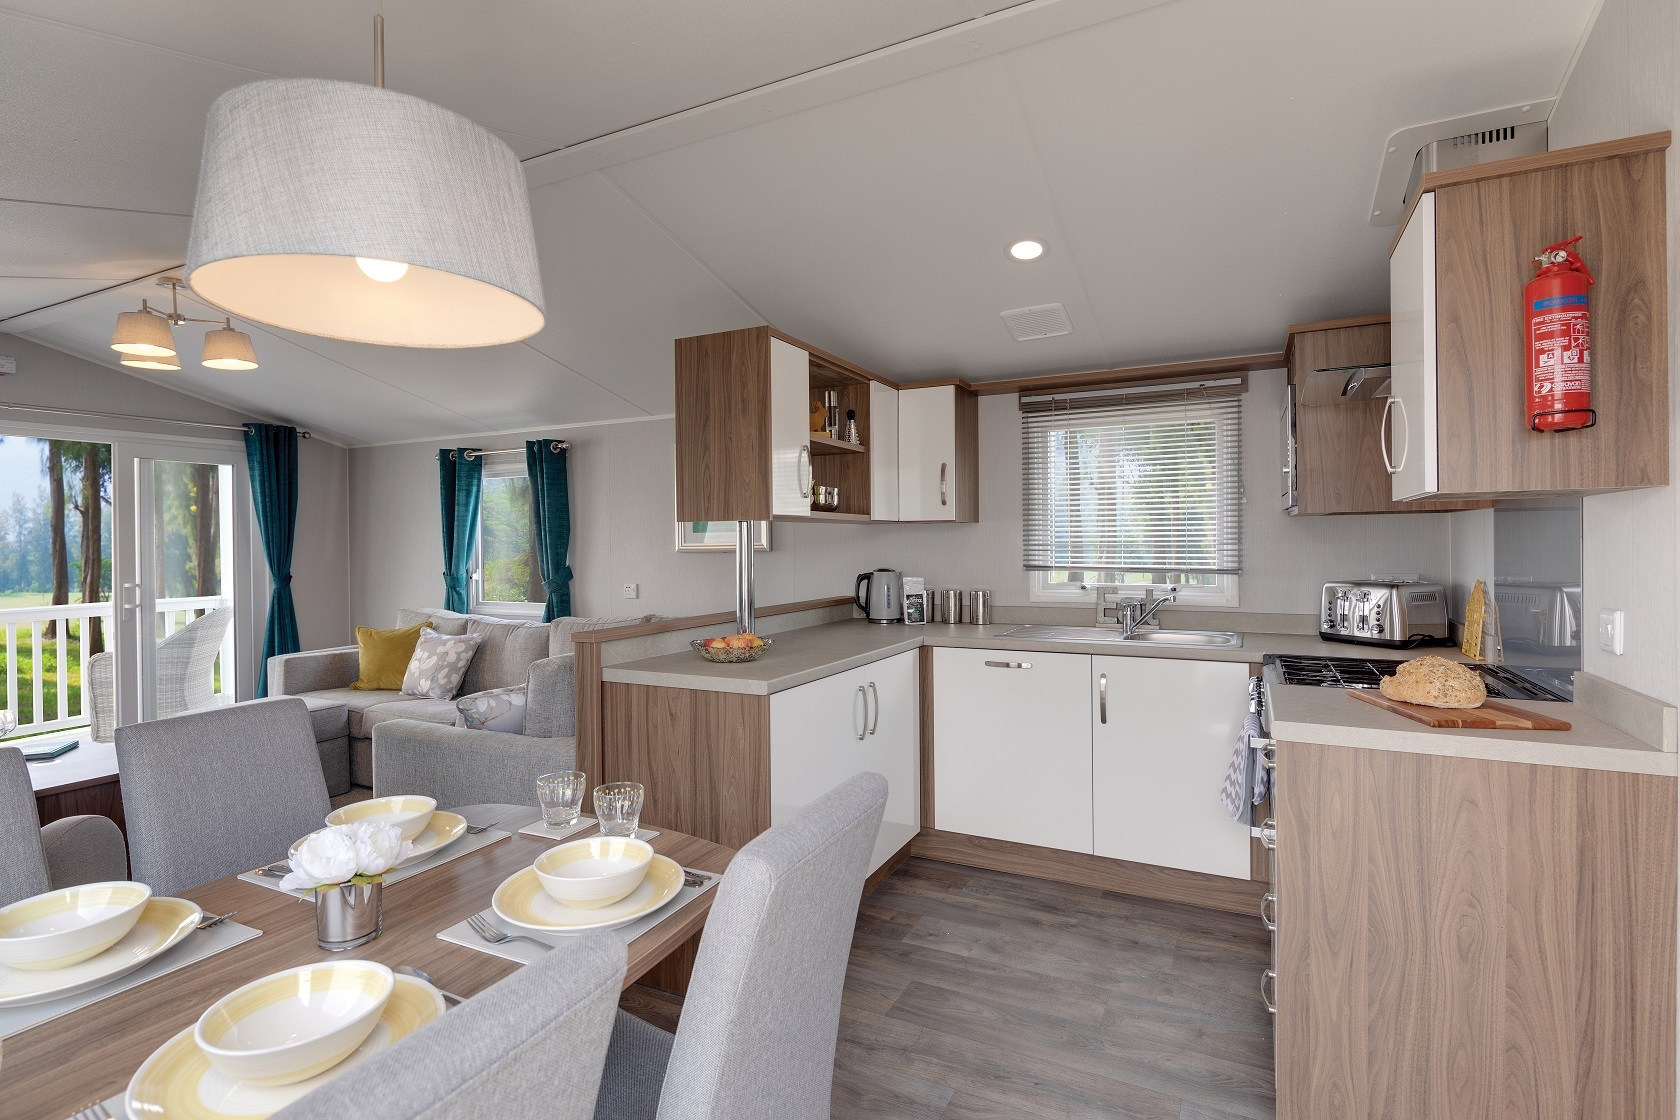 Willerby Avonmore: Static Caravans and Holiday Homes for Sale on Caravan Parks, Frosterley, Durham and Weardale Large Image 1